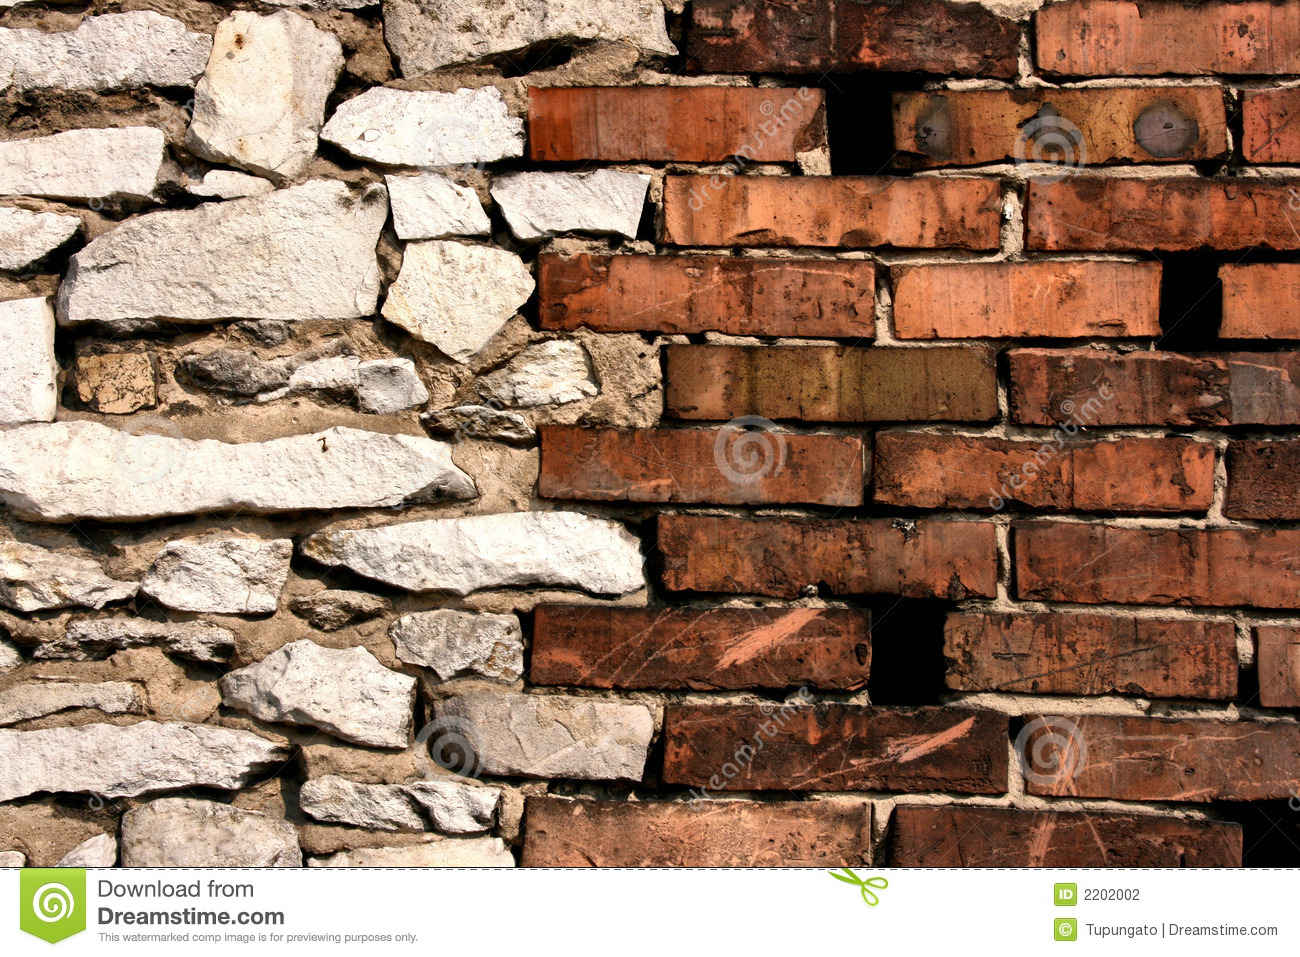 Brick and stone walls joint stock photo image 2202002 for Stone and brick